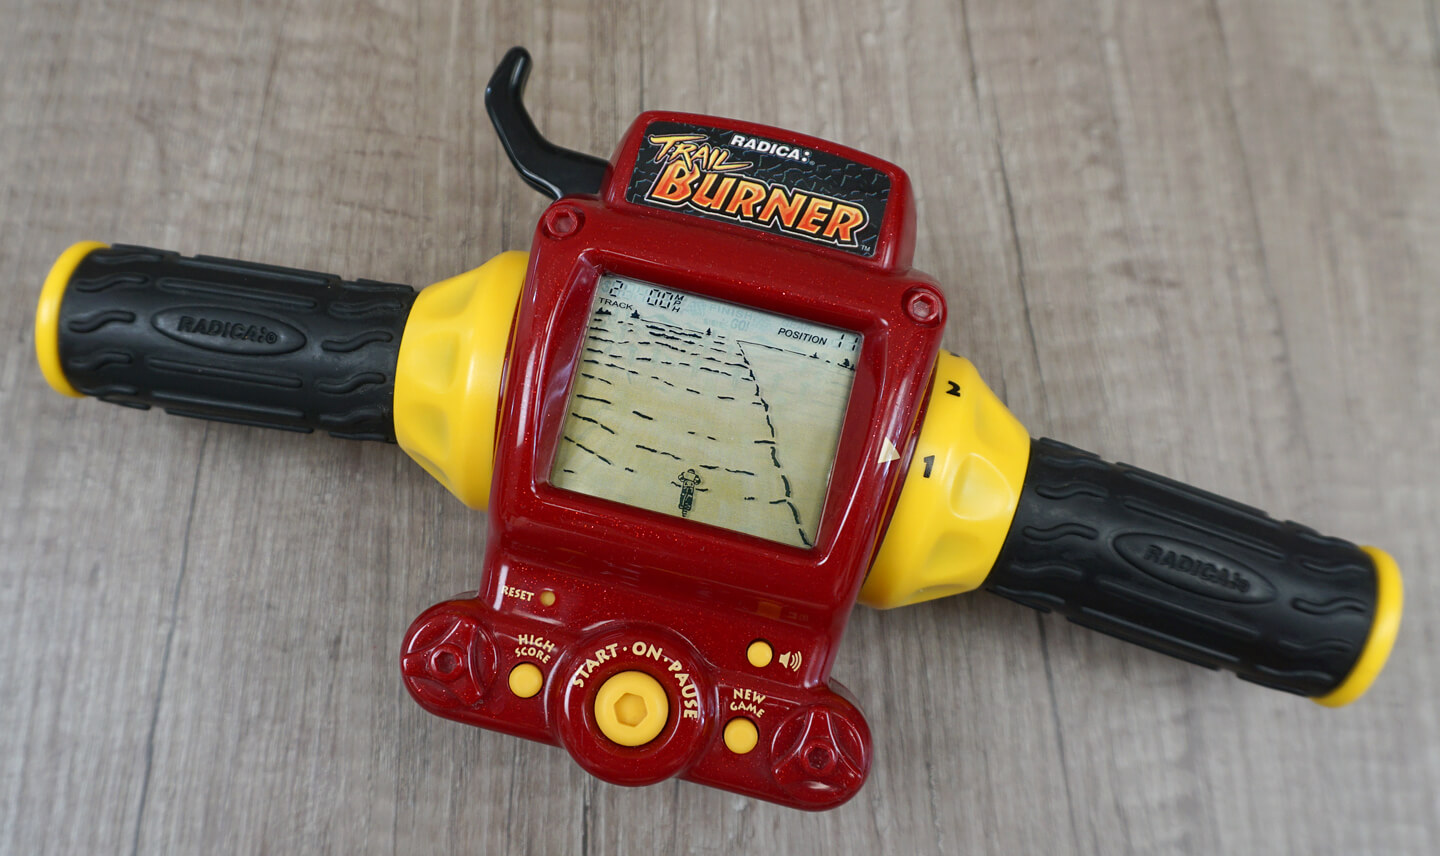 Radica Trail Burner